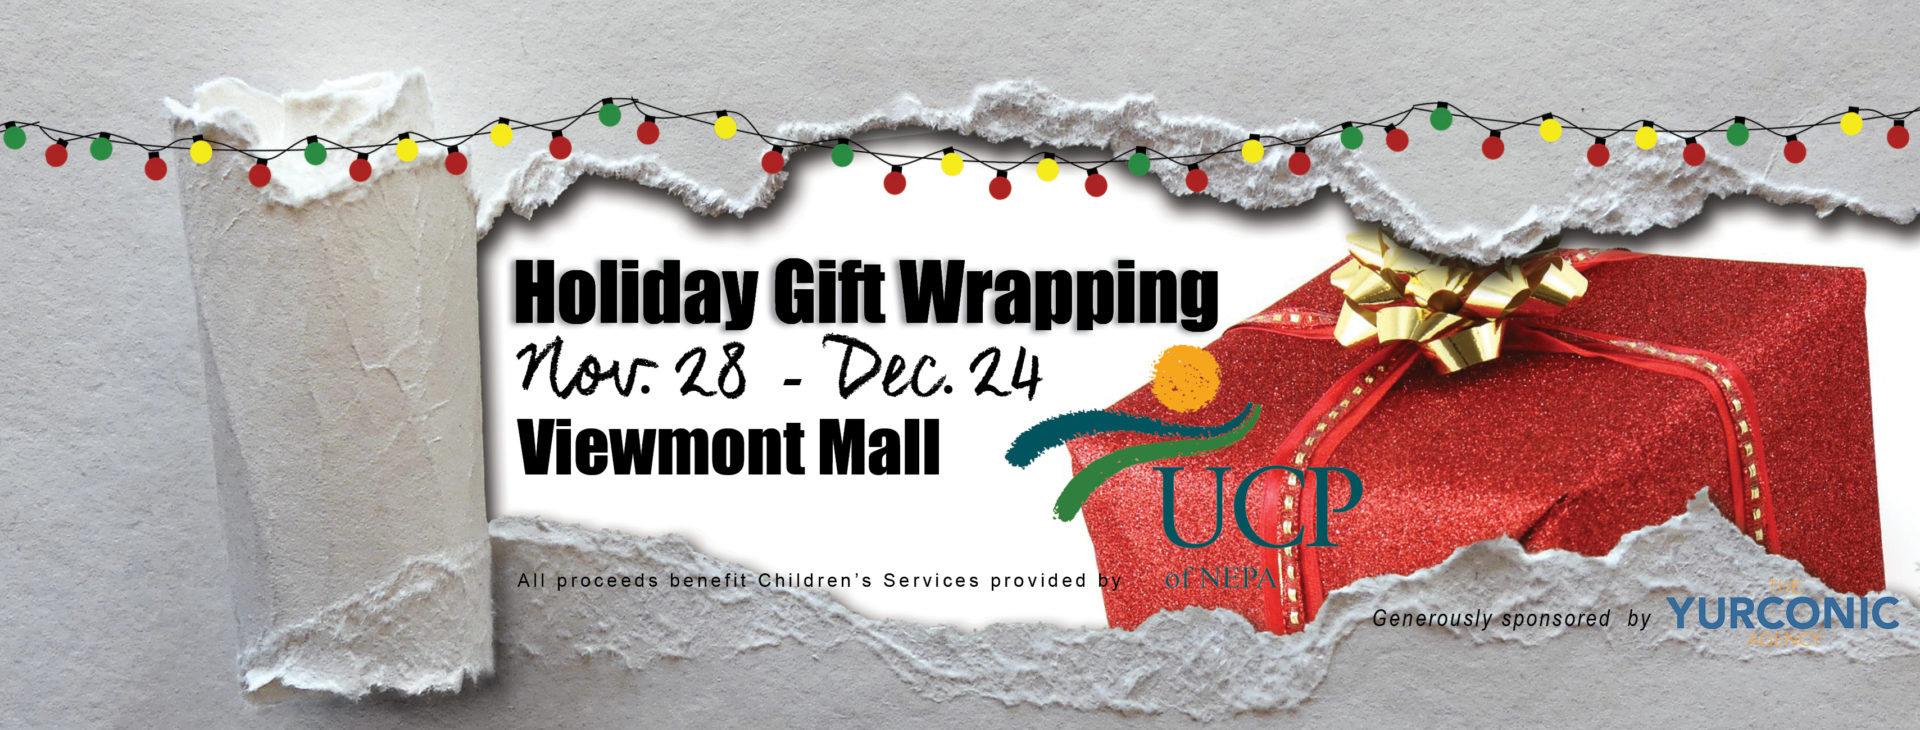 Join us for holiday gift wrapping from Nov 29 to December 24 at the Viewmont Mall in Scranton.